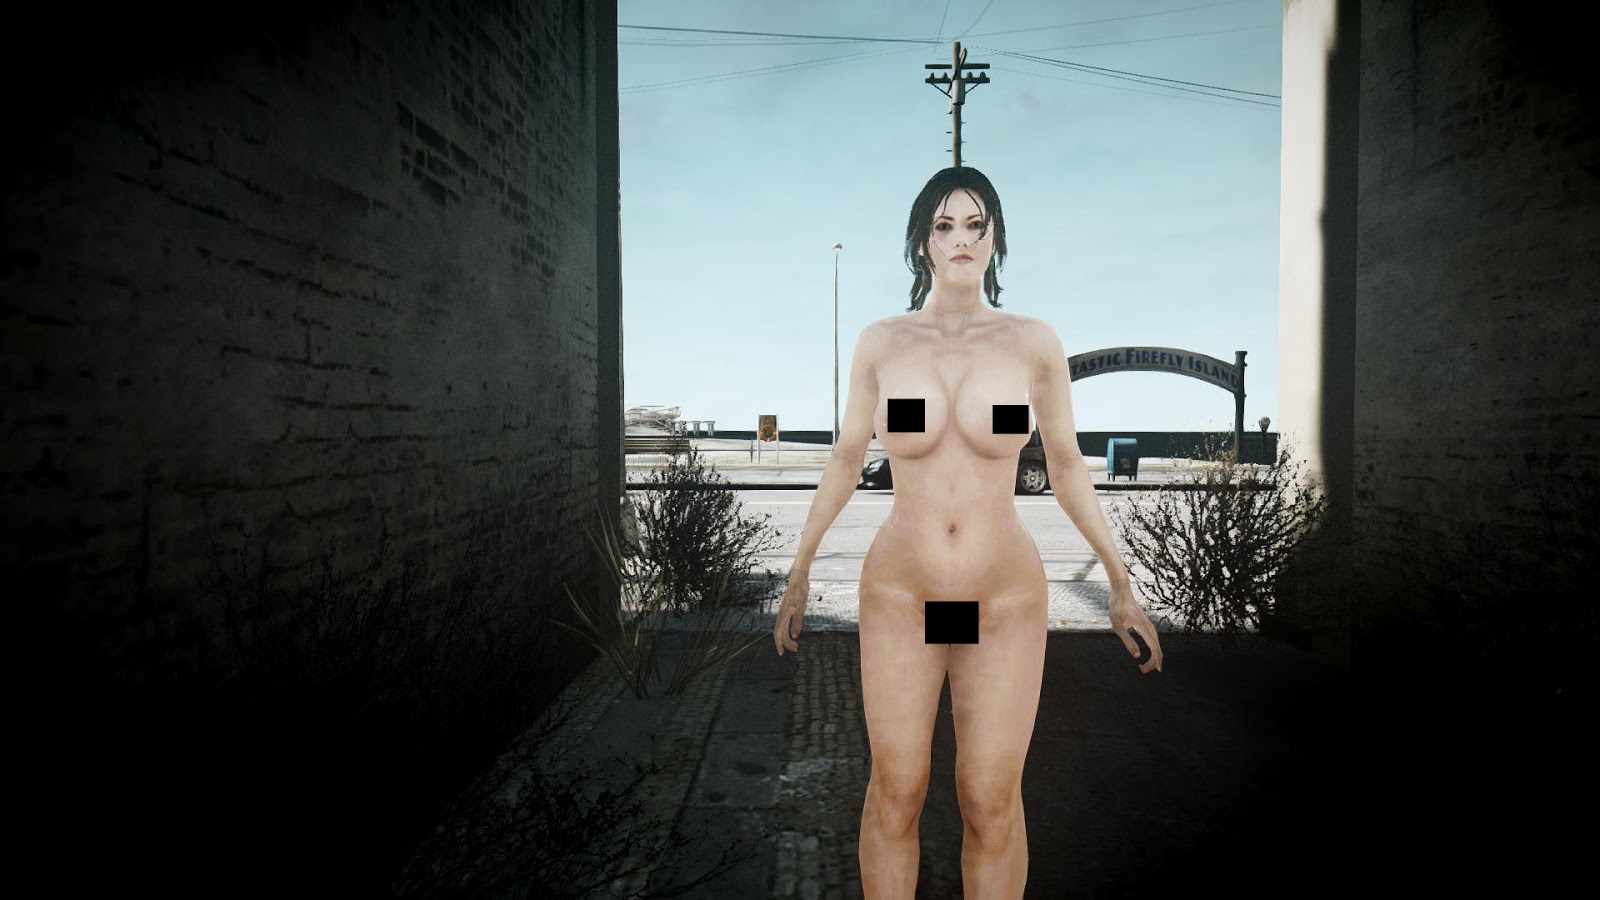 Gta 4 nud naked smut gallery